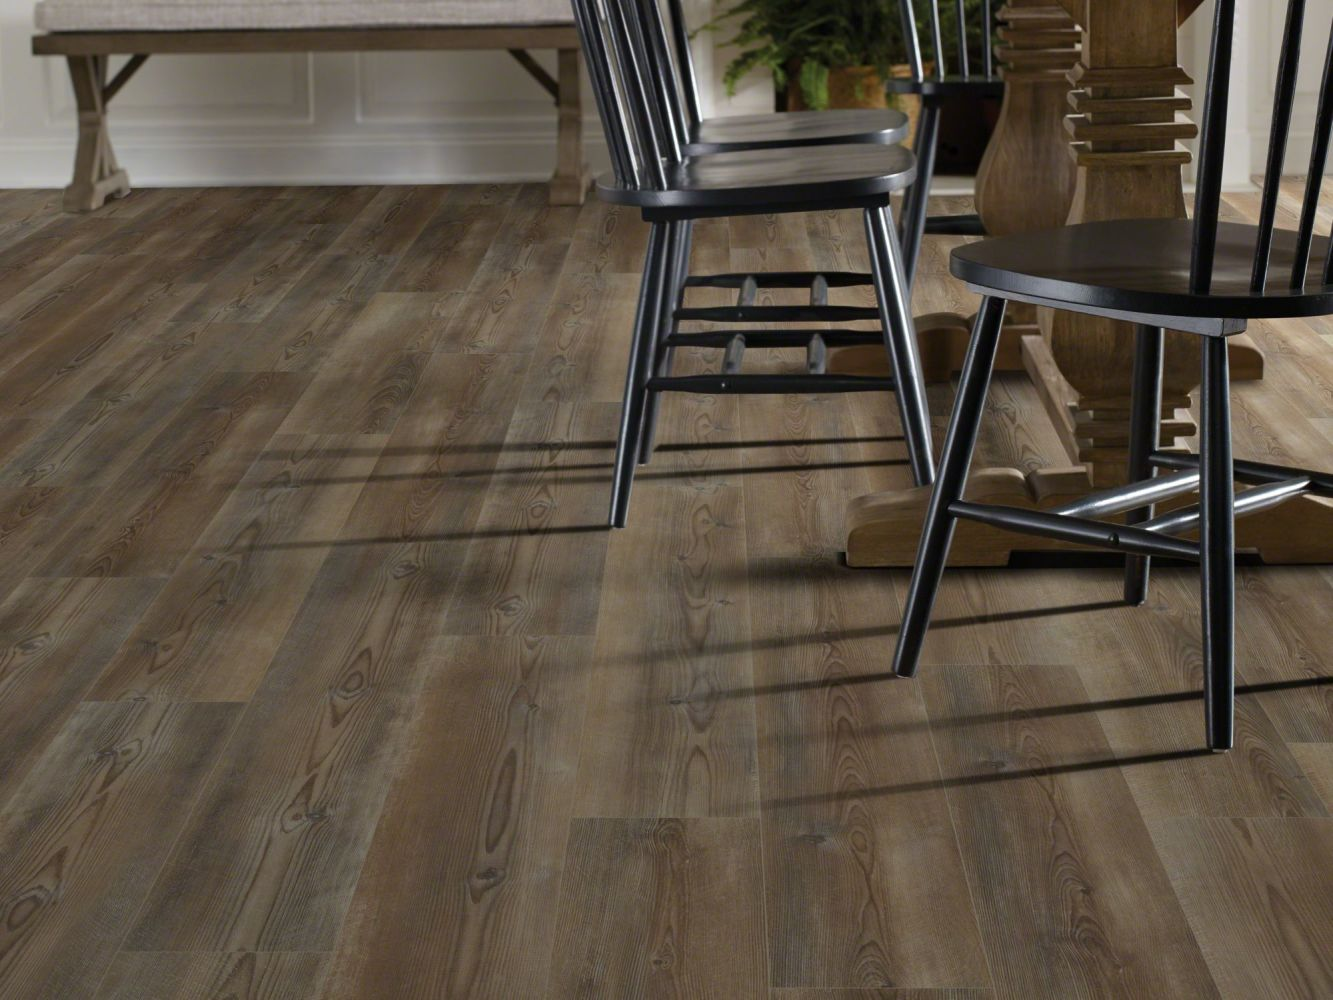 Shaw Floors Resilient Residential Paragon 7″ Plus Ripped Pine 07047_1020V